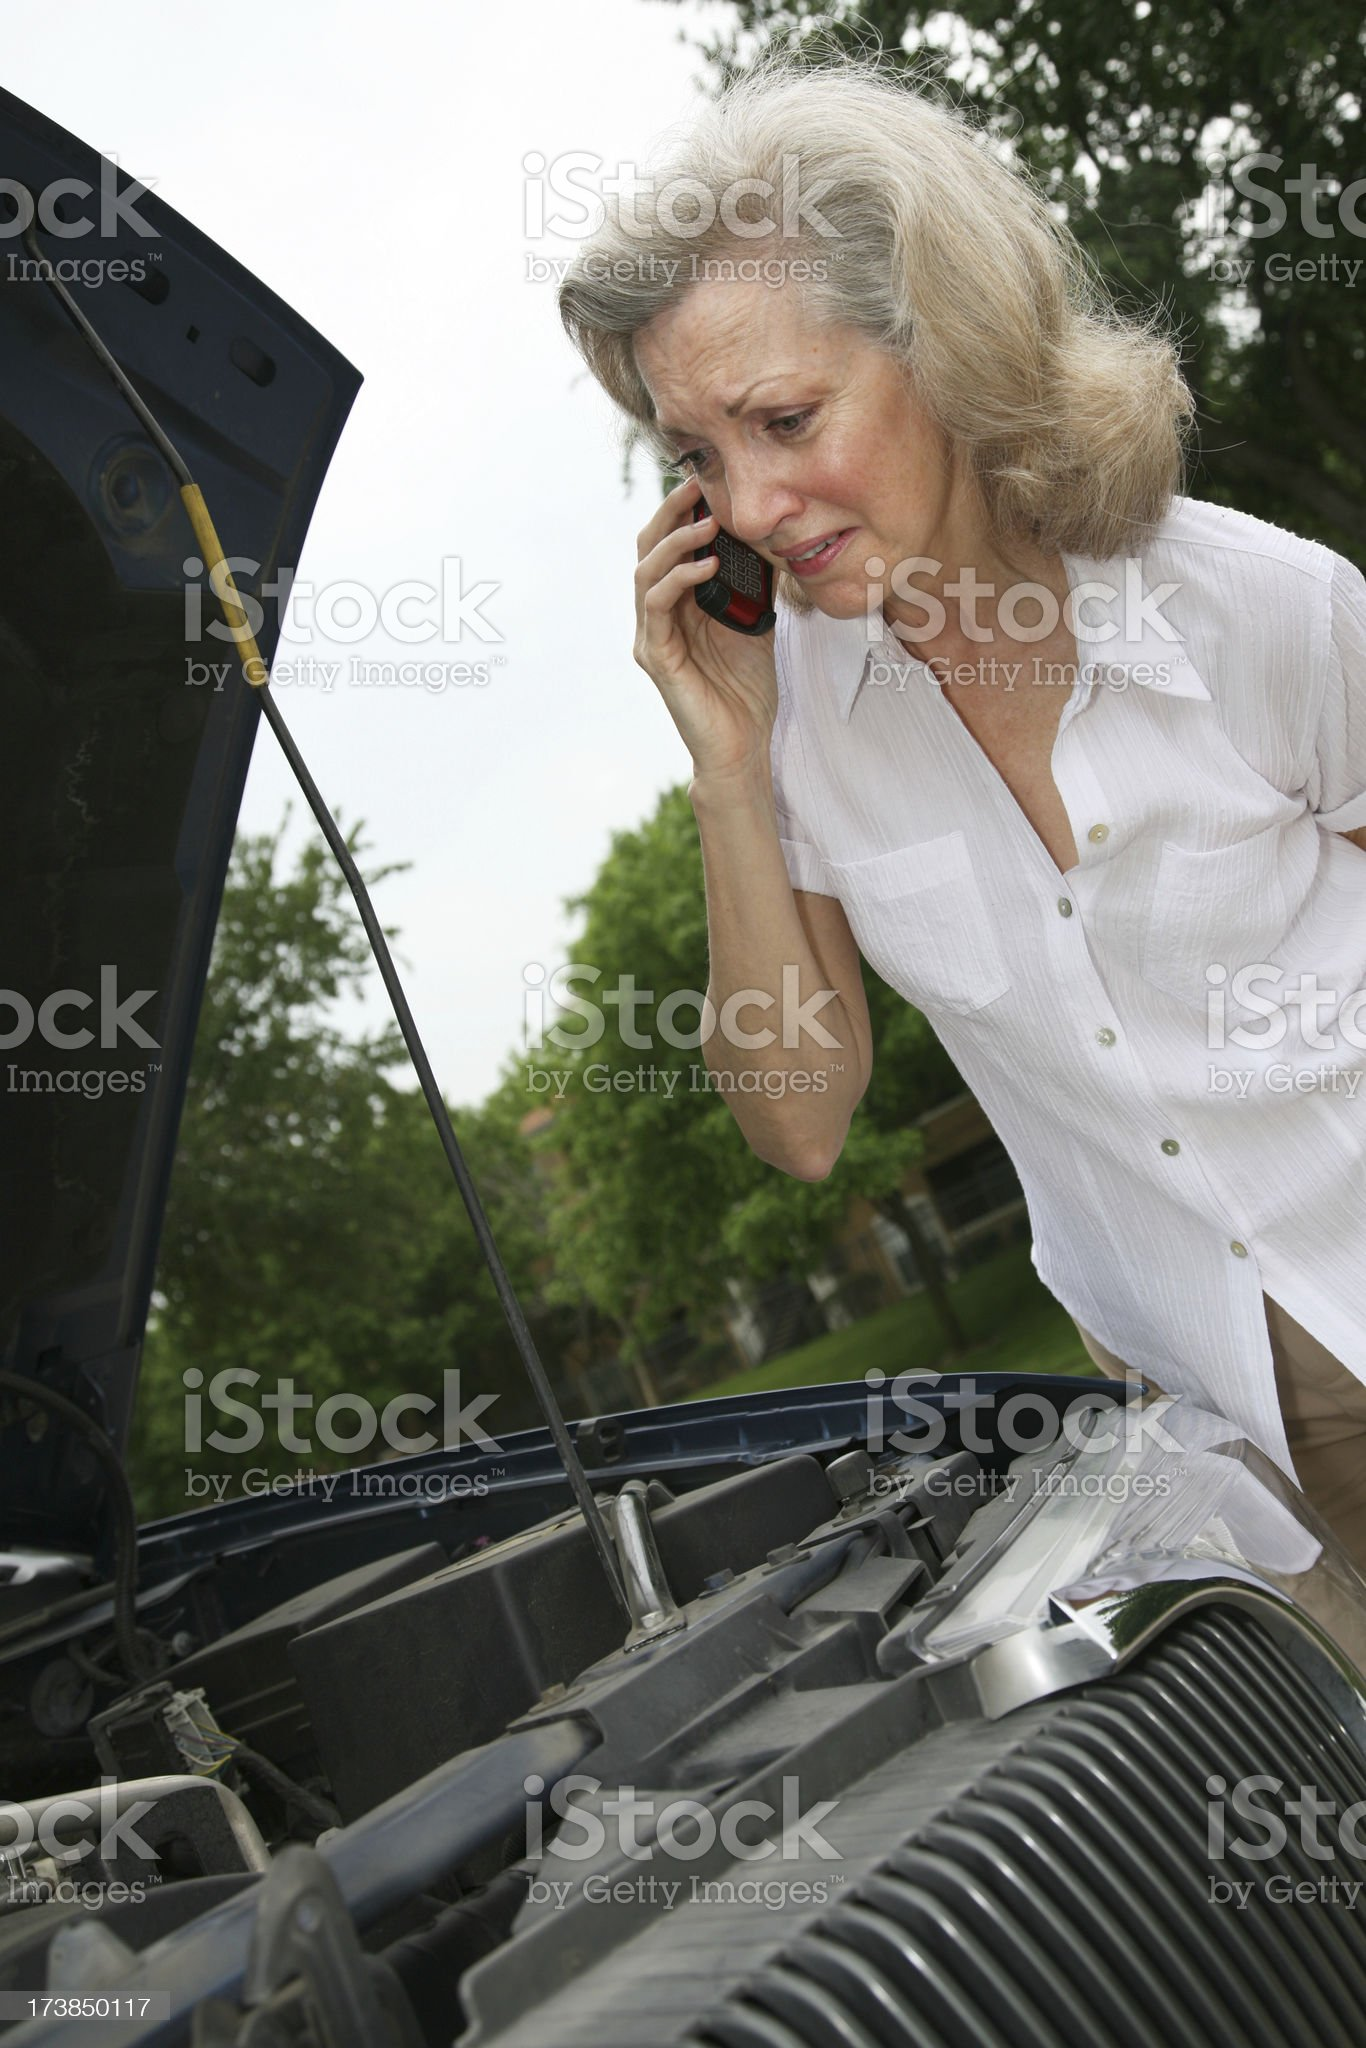 Senior Adult Woman Worried about Her Broken Down Car royalty-free stock photo